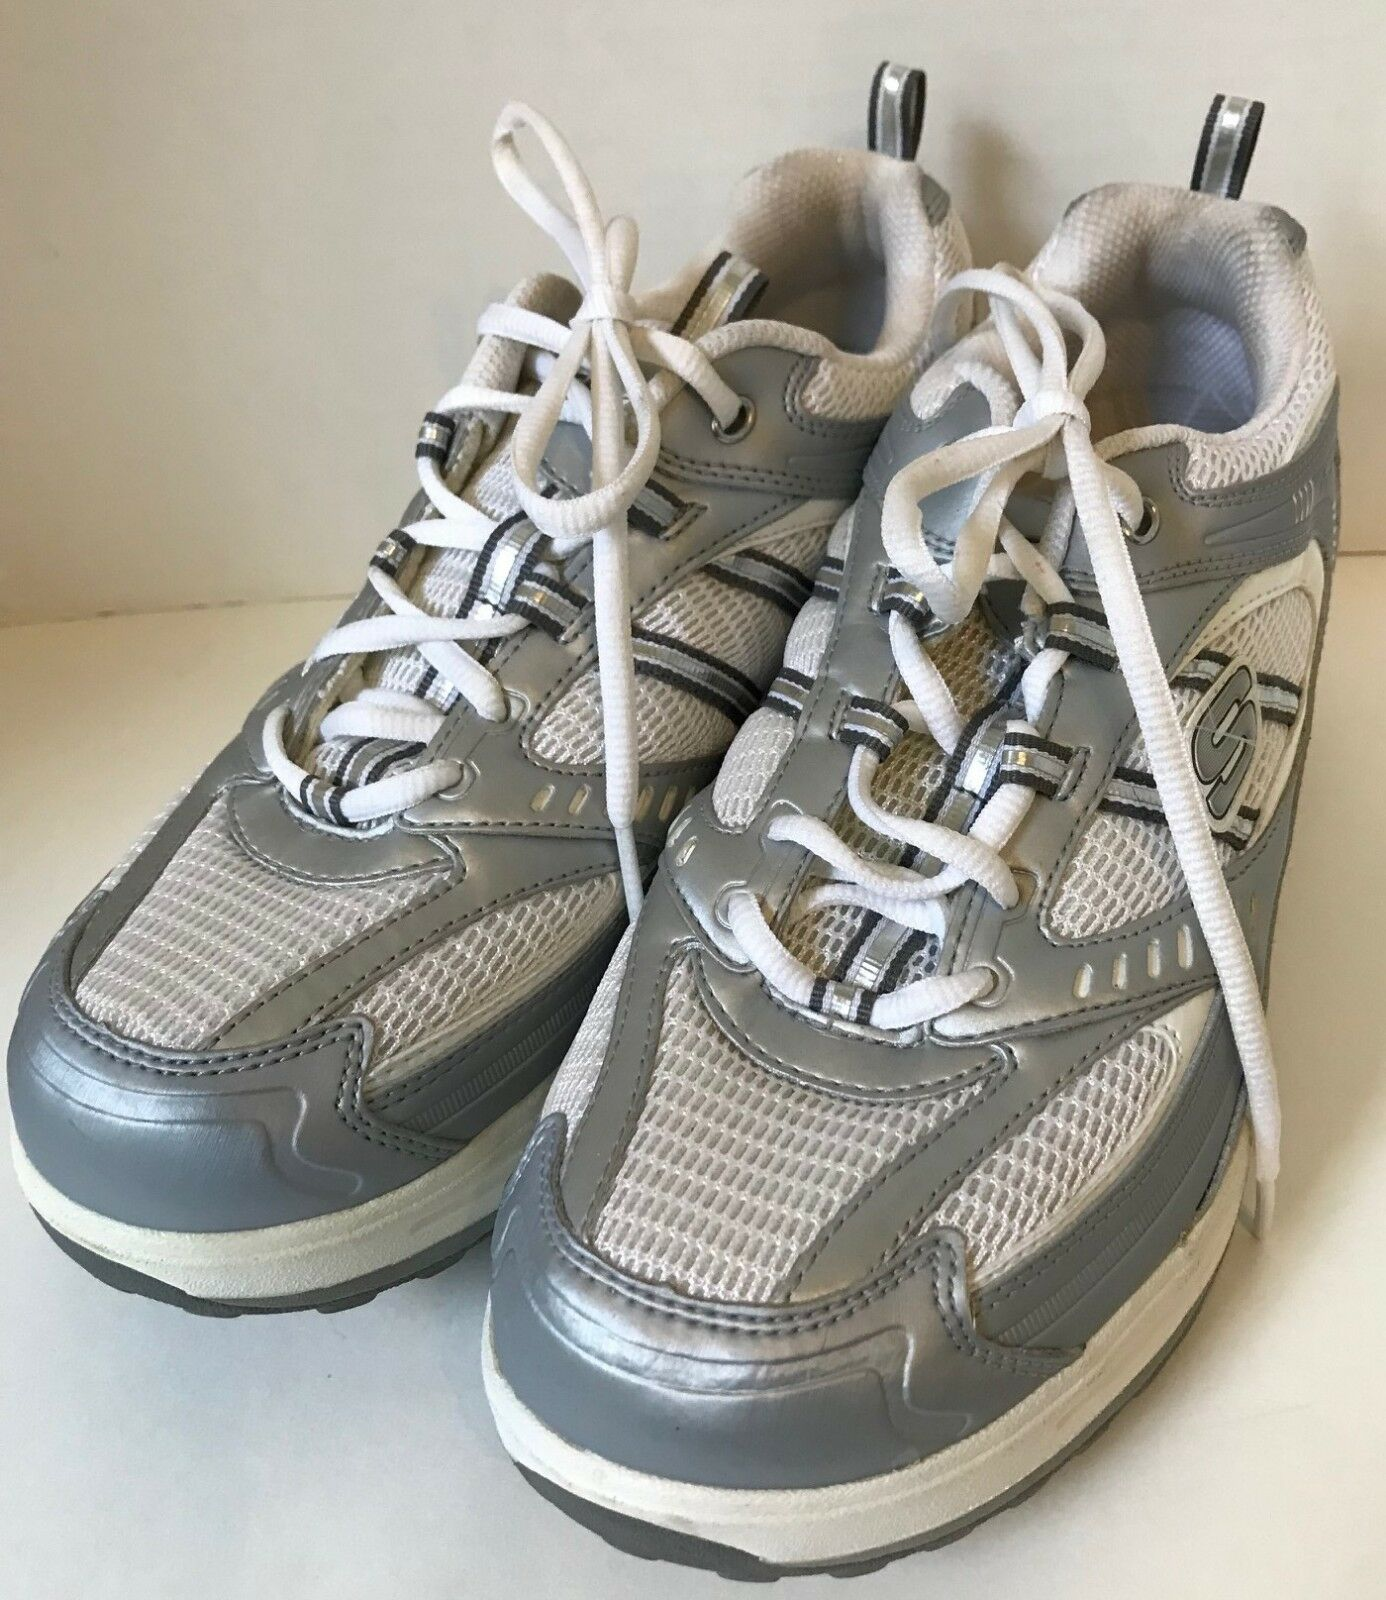 reputable site 2d297 5f44f SKECHERS Womens Shape-Ups Athletic Walking shoes Silver Size 10 Leather  White nxzczk5038-Women s Trainers